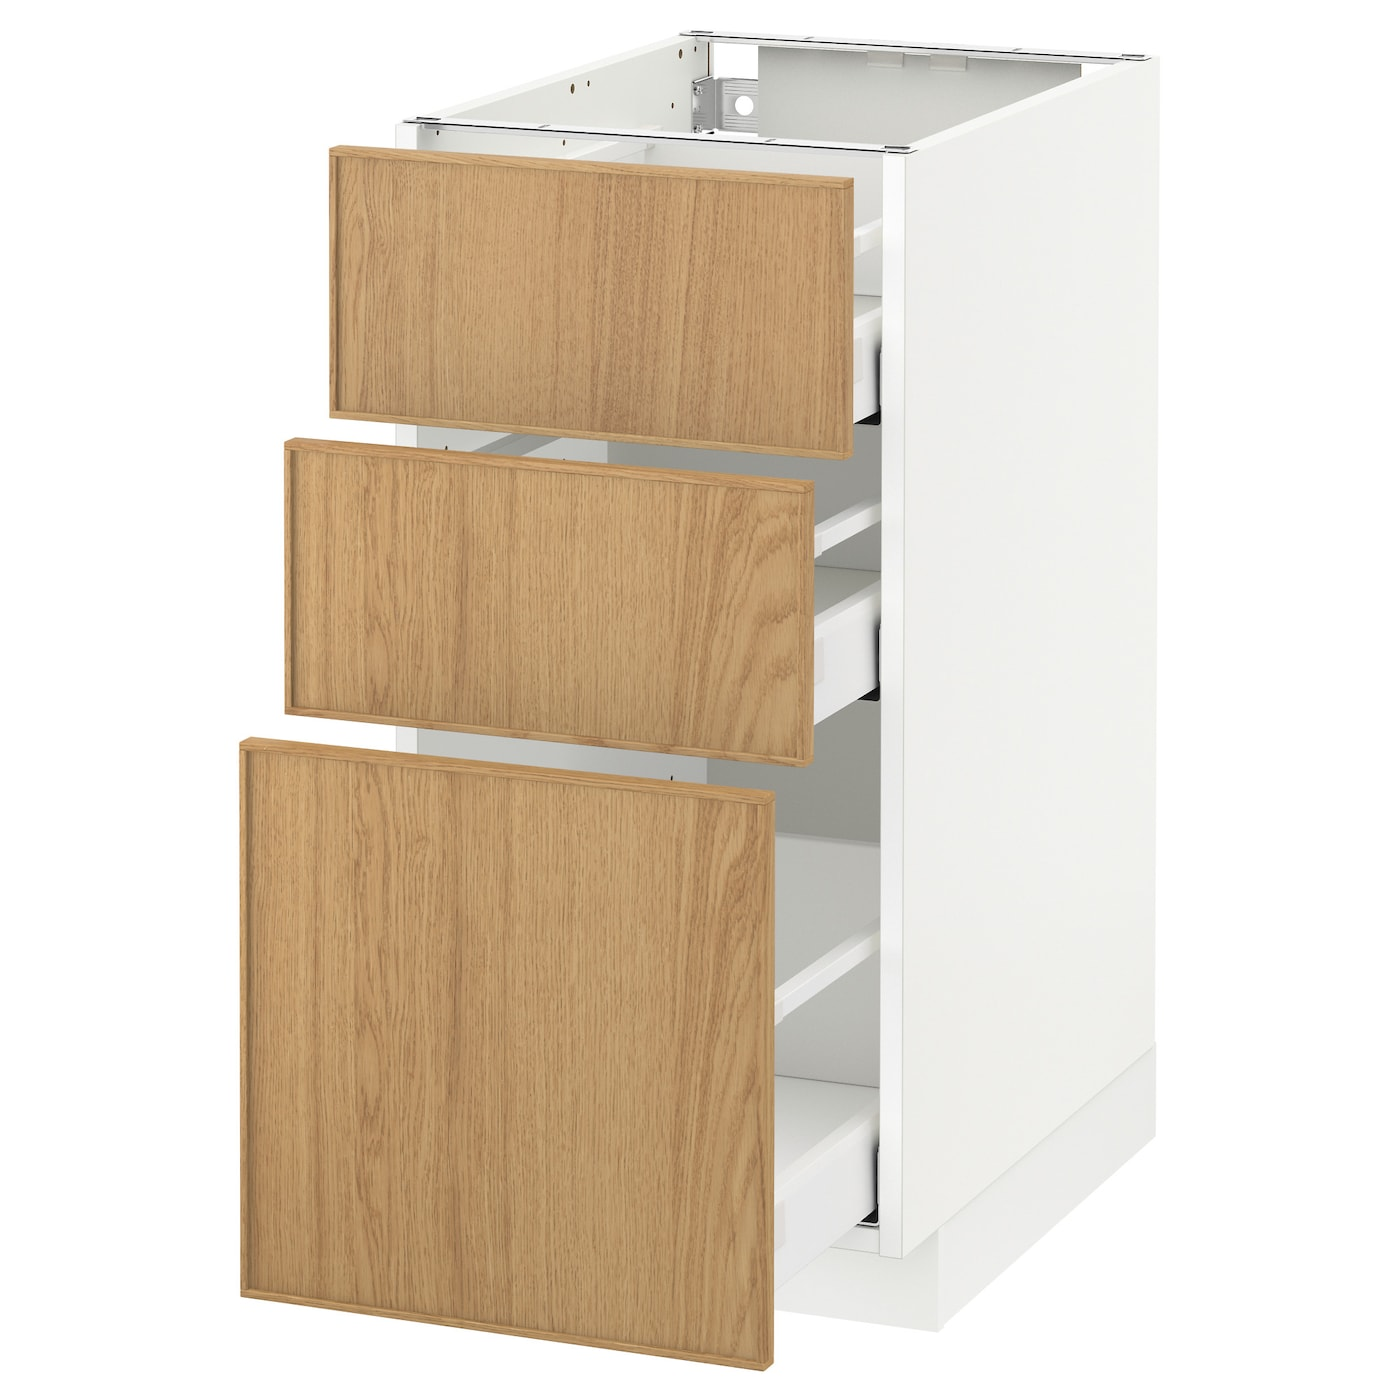 Metod maximera base cabinet with 3 drawers white ekestad for Kitchen cabinets and drawers